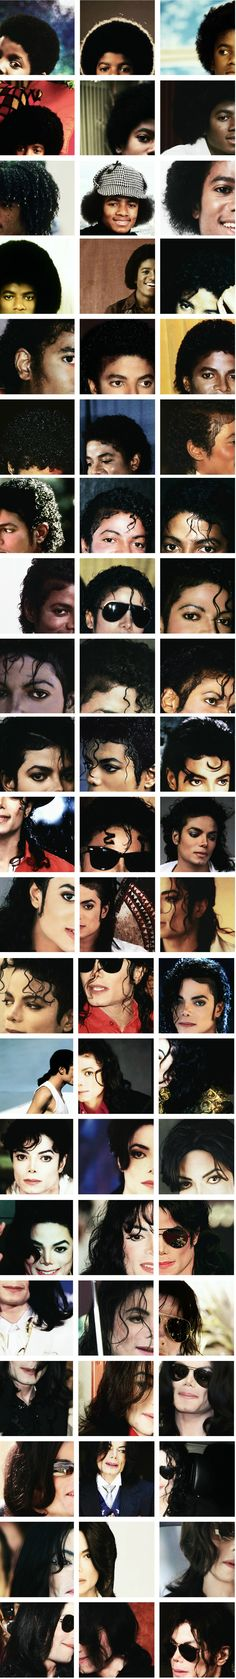 Michael Jackson's hair appreciation